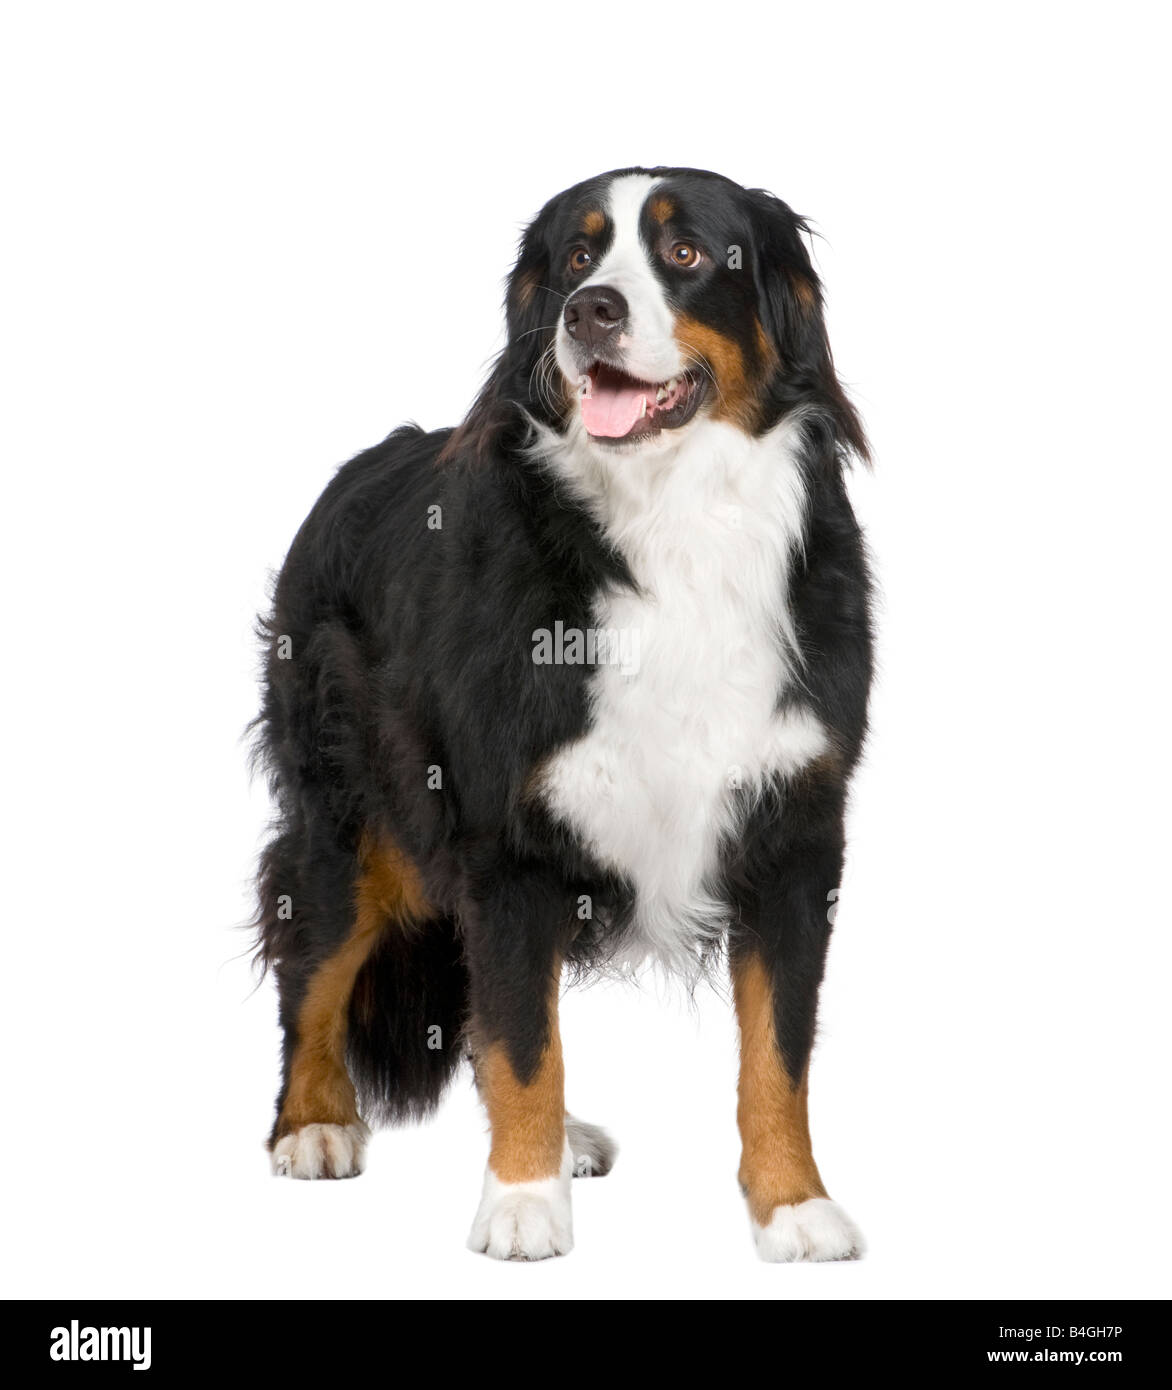 Bernese mountain dog 2 years in front of a white background - Stock Image